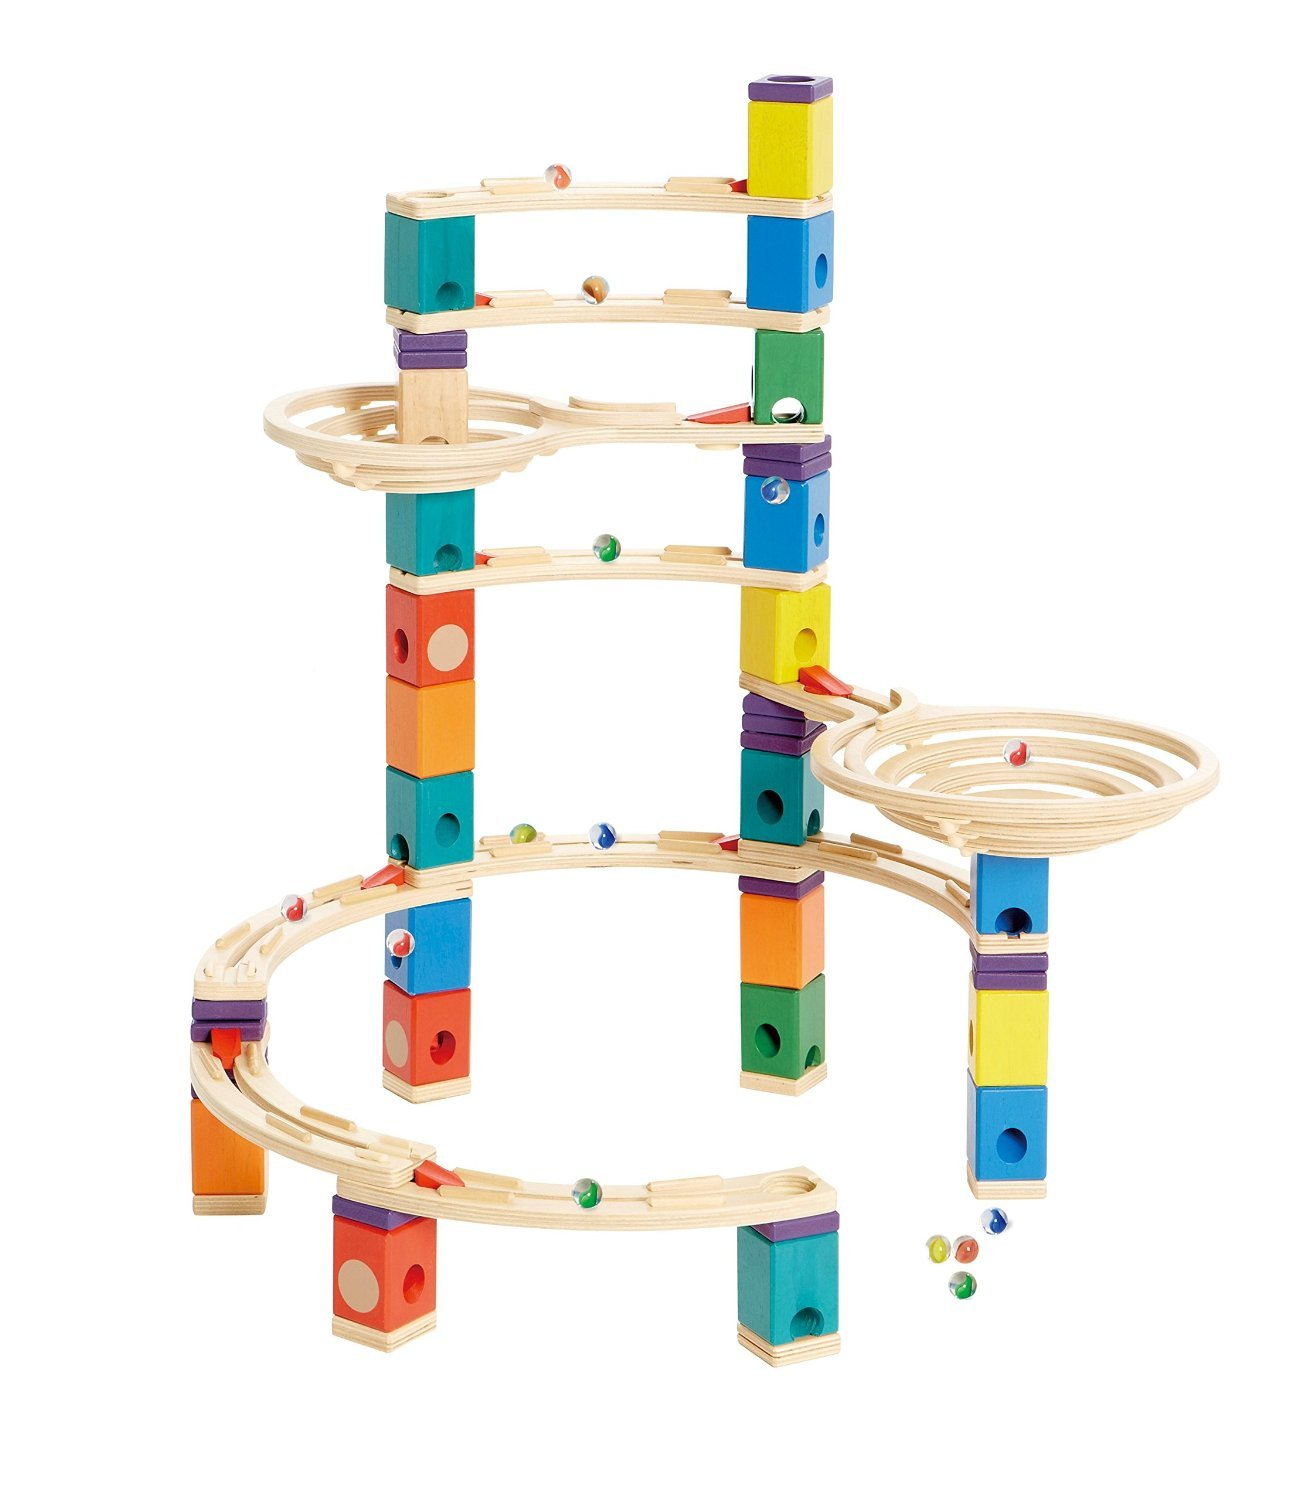 Hape Quadrilla Wooden Marble Run Construction - Typhoon - Quality Time Playing Together Wooden Safe Play - Smart Play for Smart Families